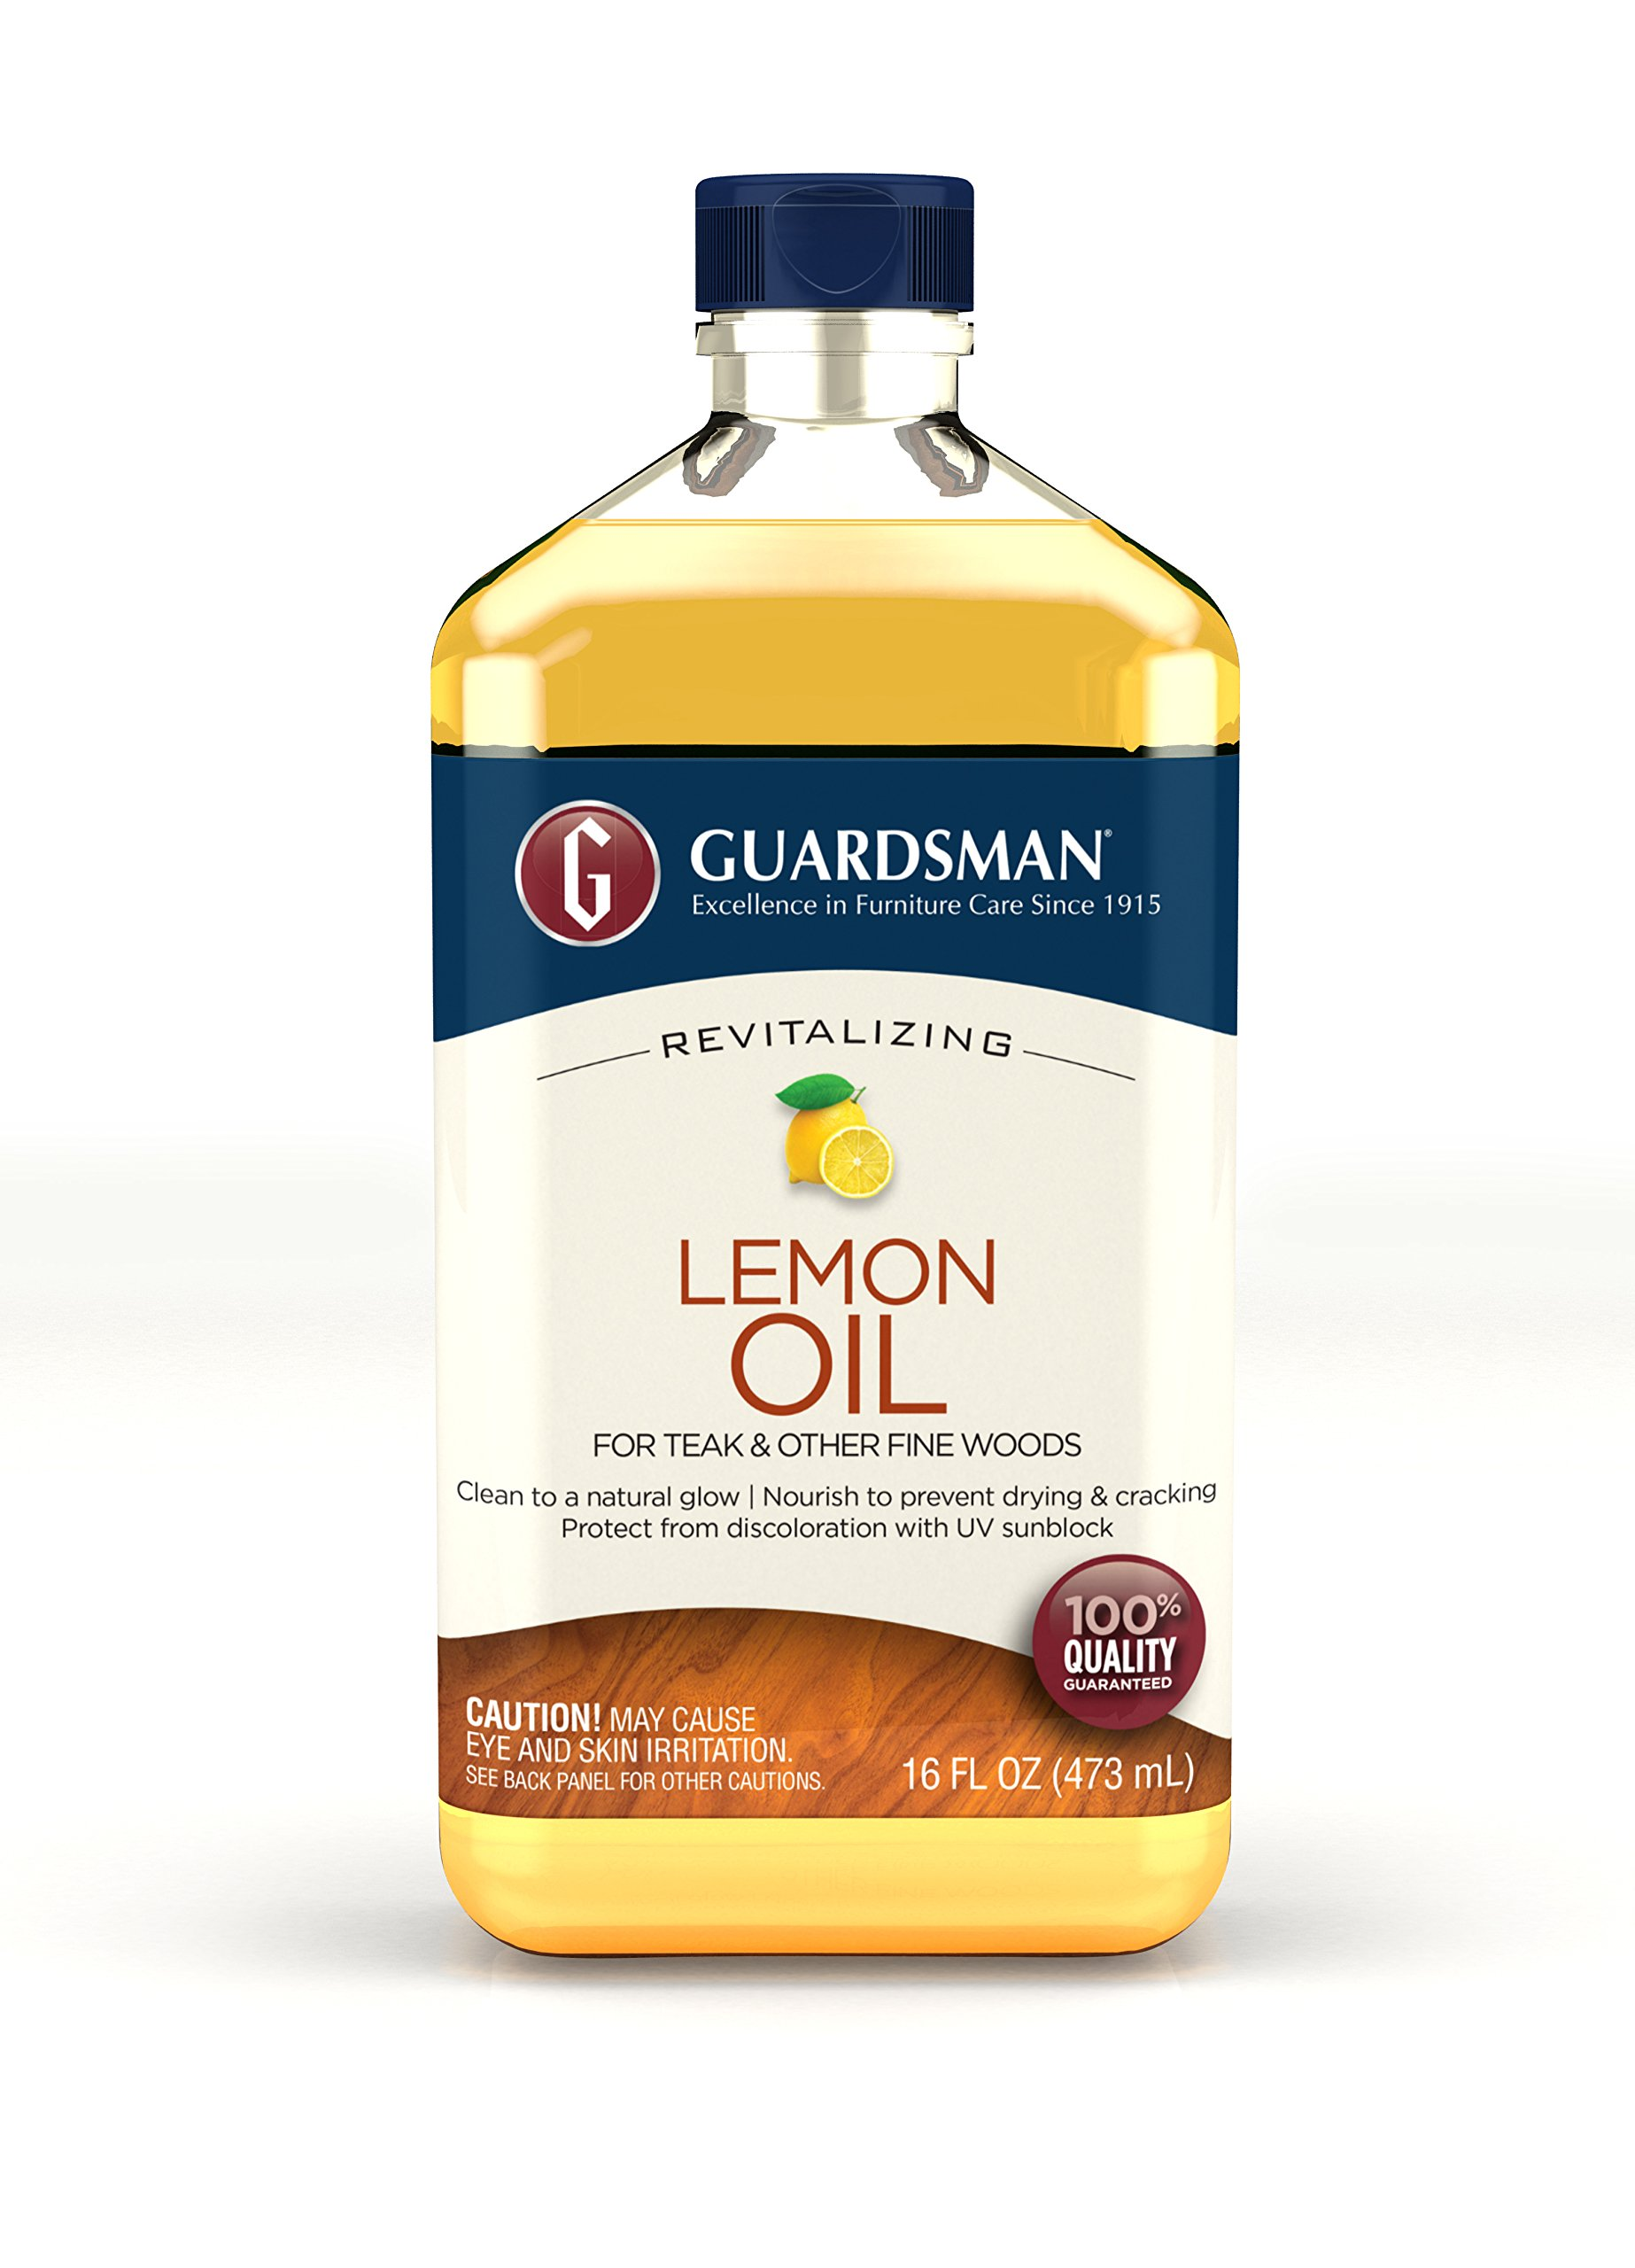 Guardsman Revitalizing Lemon Oil For Wood Furniture - 16 oz- UV protection, Cleans, Restores and Protects - 461700 by Guardsman